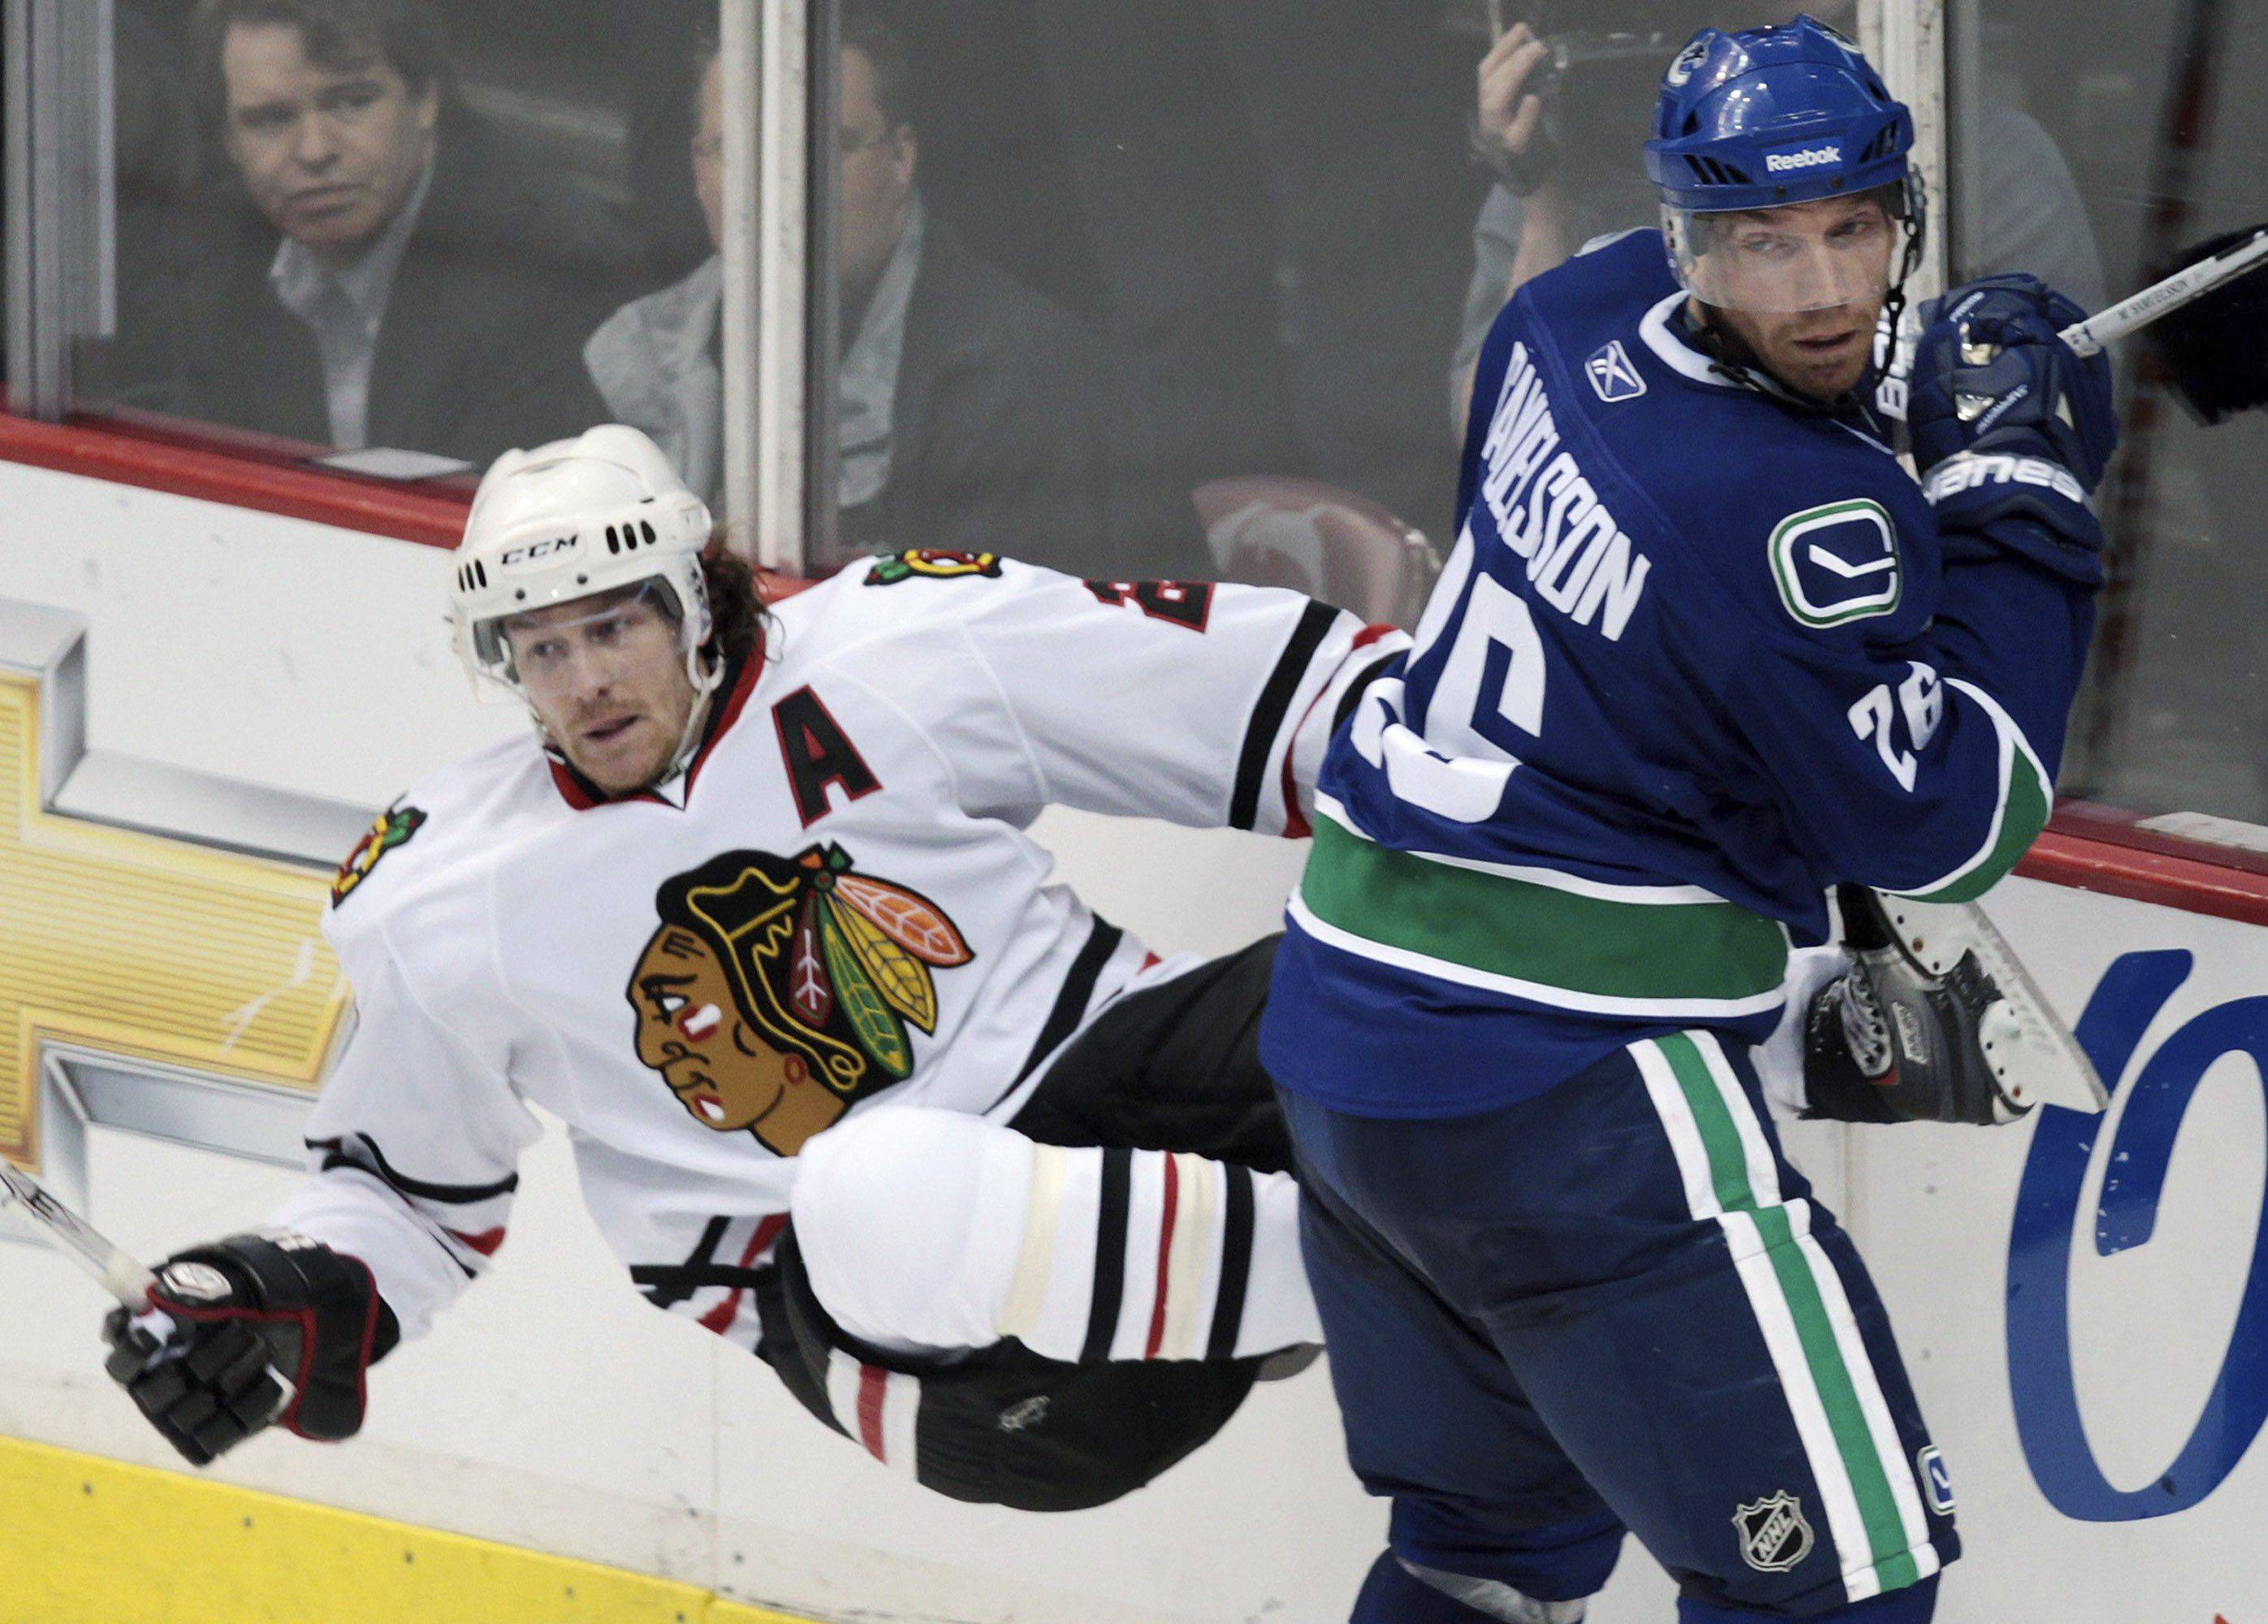 Vancouver Canucks' Mikael Samuelsson, right, checks Chicago Blackhawks' Duncan Keith during the second period.